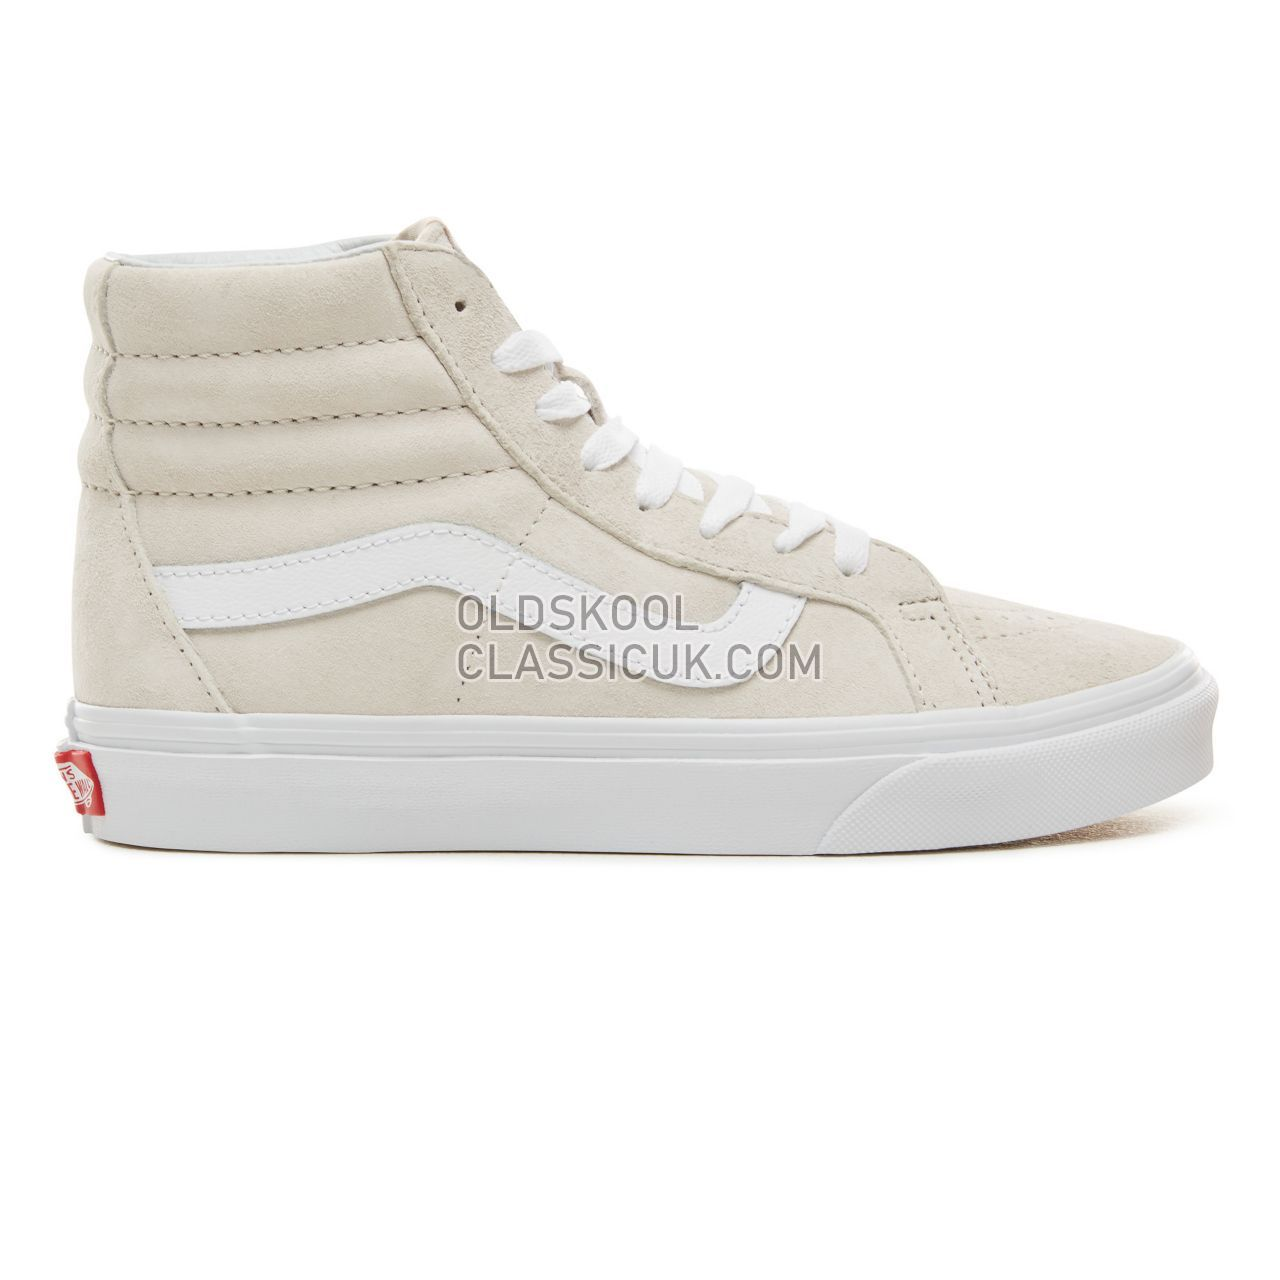 Vans Suede Sk8-Hi Reissue Sneakers Mens (Pig Suede) Moonbeam/True White VA2XSBU5L Shoes